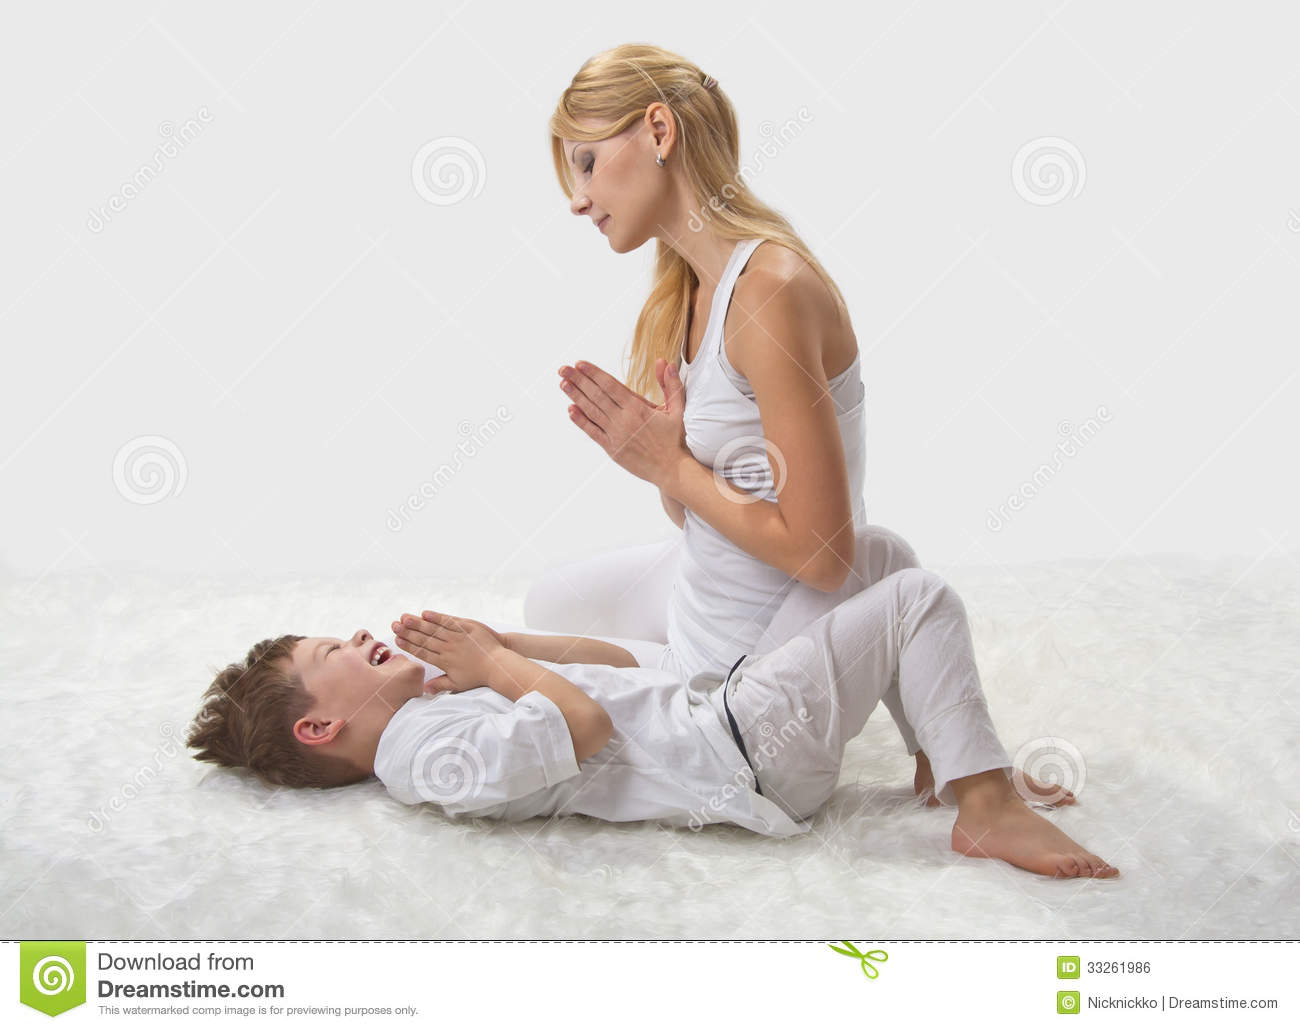 Mother And Son Do Yoga Stock Photo Image Of Health, Lifestyle - 33261986-8250